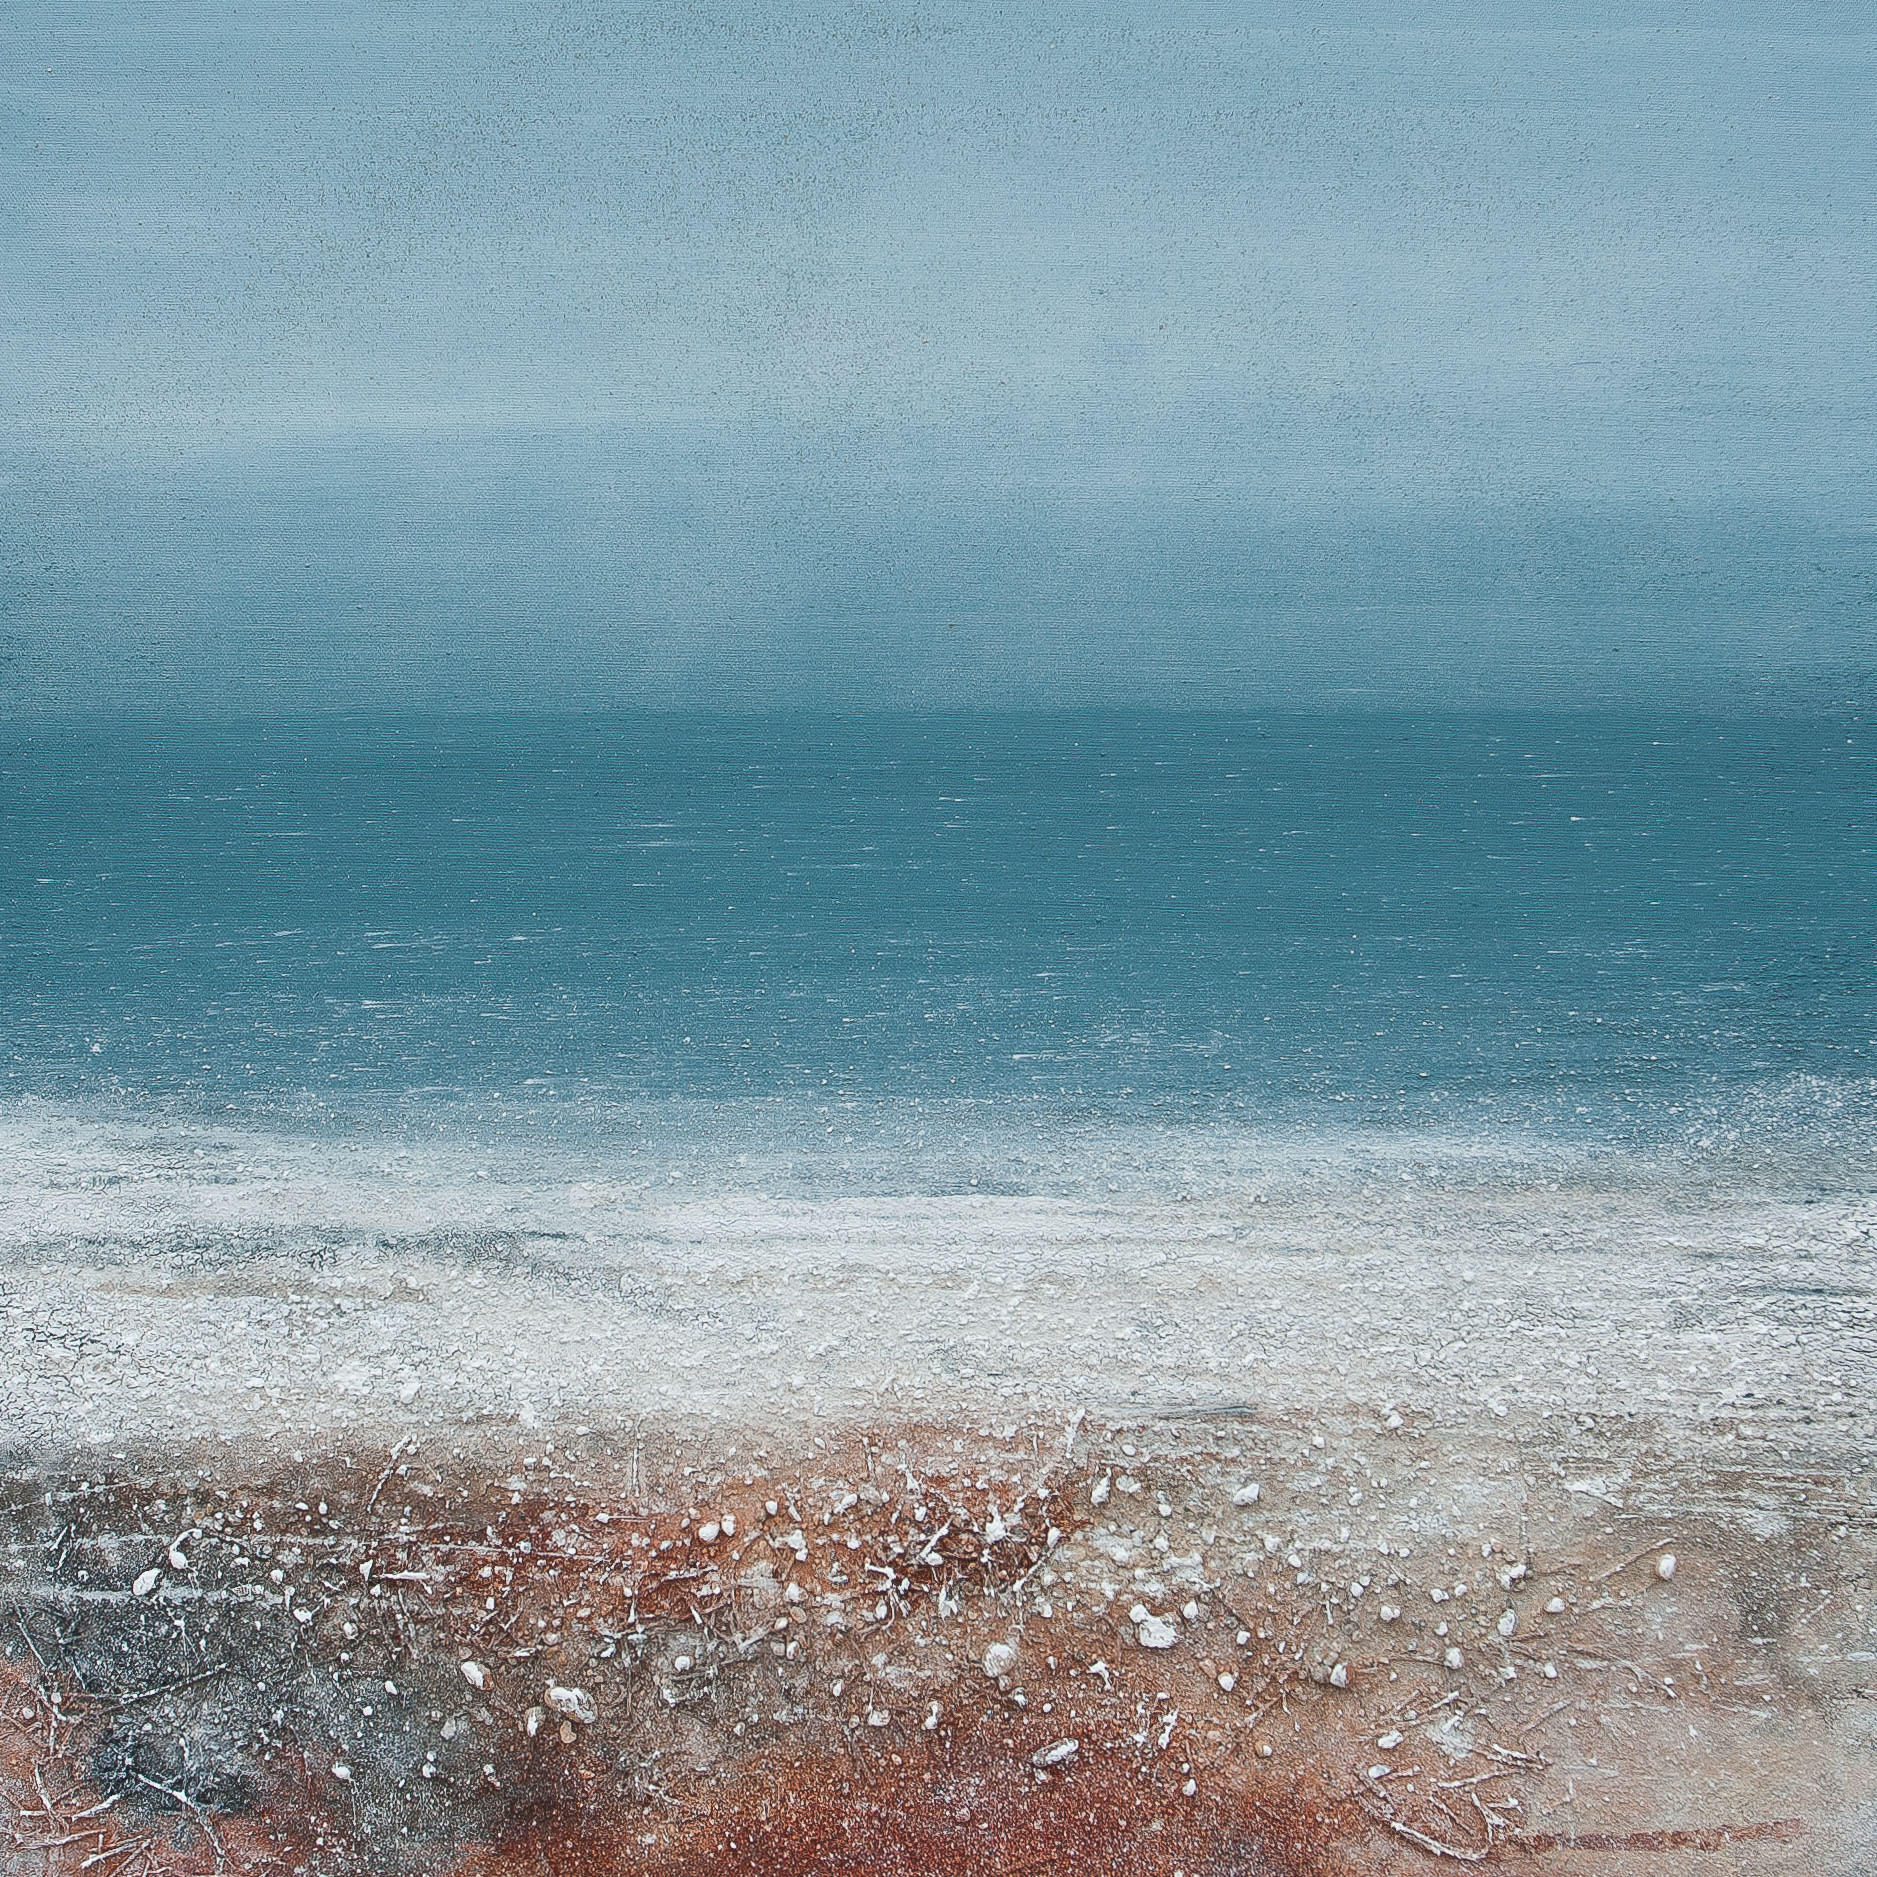 "<span class=""link fancybox-details-link""><a href=""/artists/30-alex-morton/works/4078-alex-morton-drizzle-pebbles-stick-and-stones-2017/"">View Detail Page</a></span><div class=""artist""><strong>Alex Morton</strong></div> <div class=""title""><em>Drizzle Pebbles, Stick and Stones </em>, 2017</div> <div class=""signed_and_dated"">Signed on reverse</div> <div class=""medium"">Mixed Media On Canvas </div> <div class=""dimensions"">60 x 60 cm<br /> 23 5/8 x 23 5/8 inches</div><div class=""copyright_line"">OwnArt: £ 100 x 10 Months, 0% APR</div>"